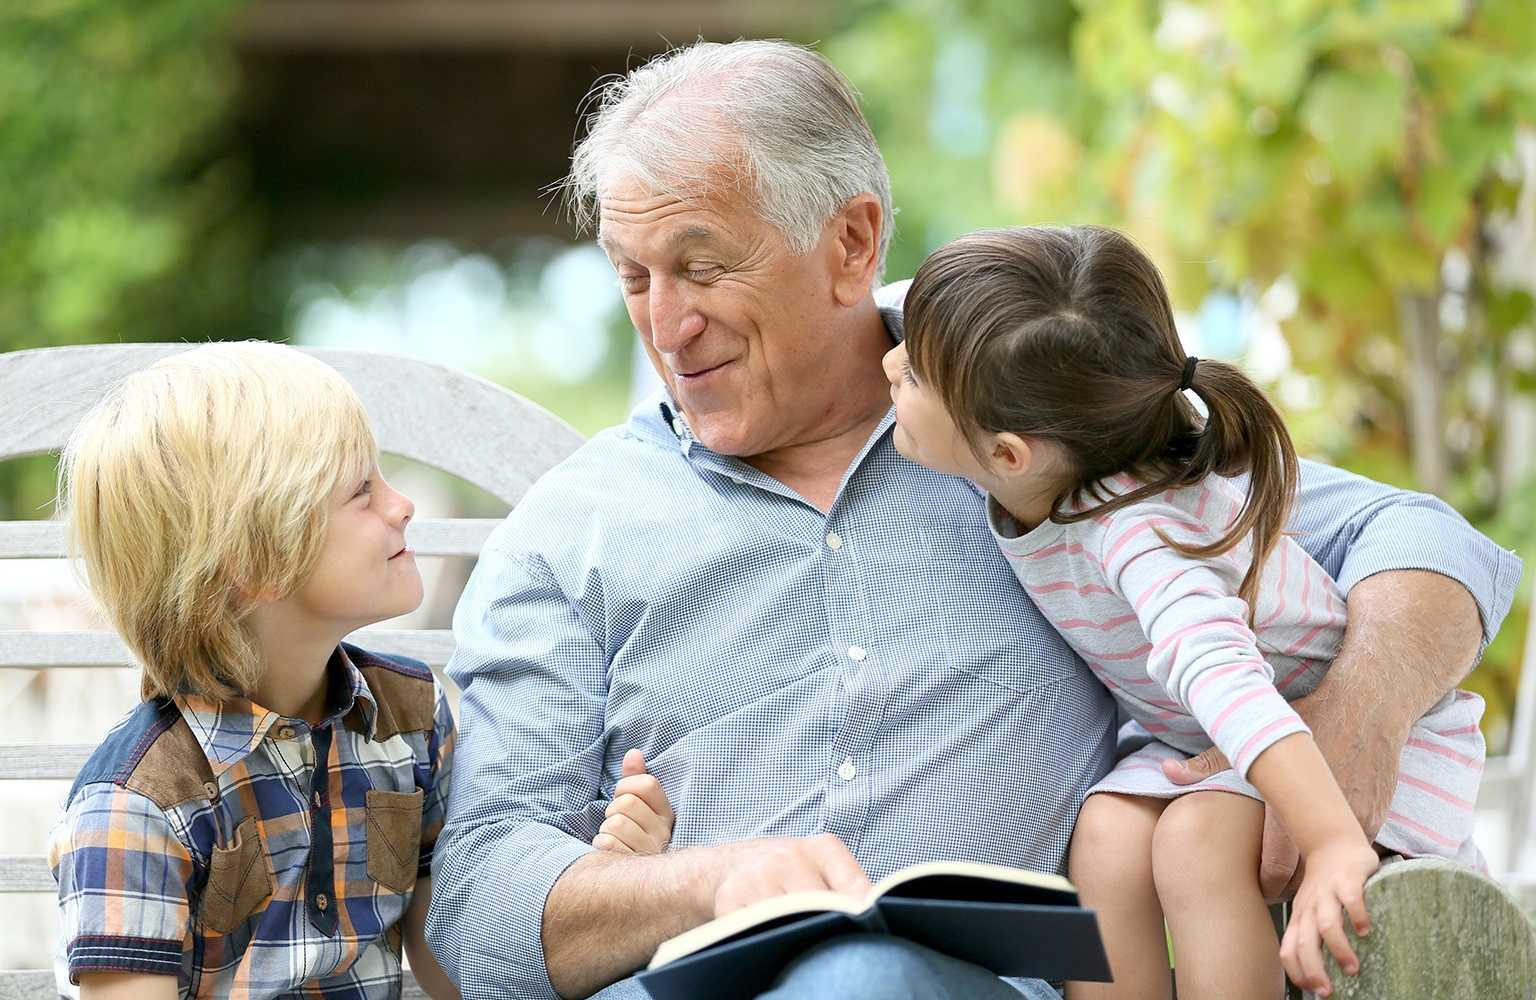 Got the grandkids? Ideas for things to do together…